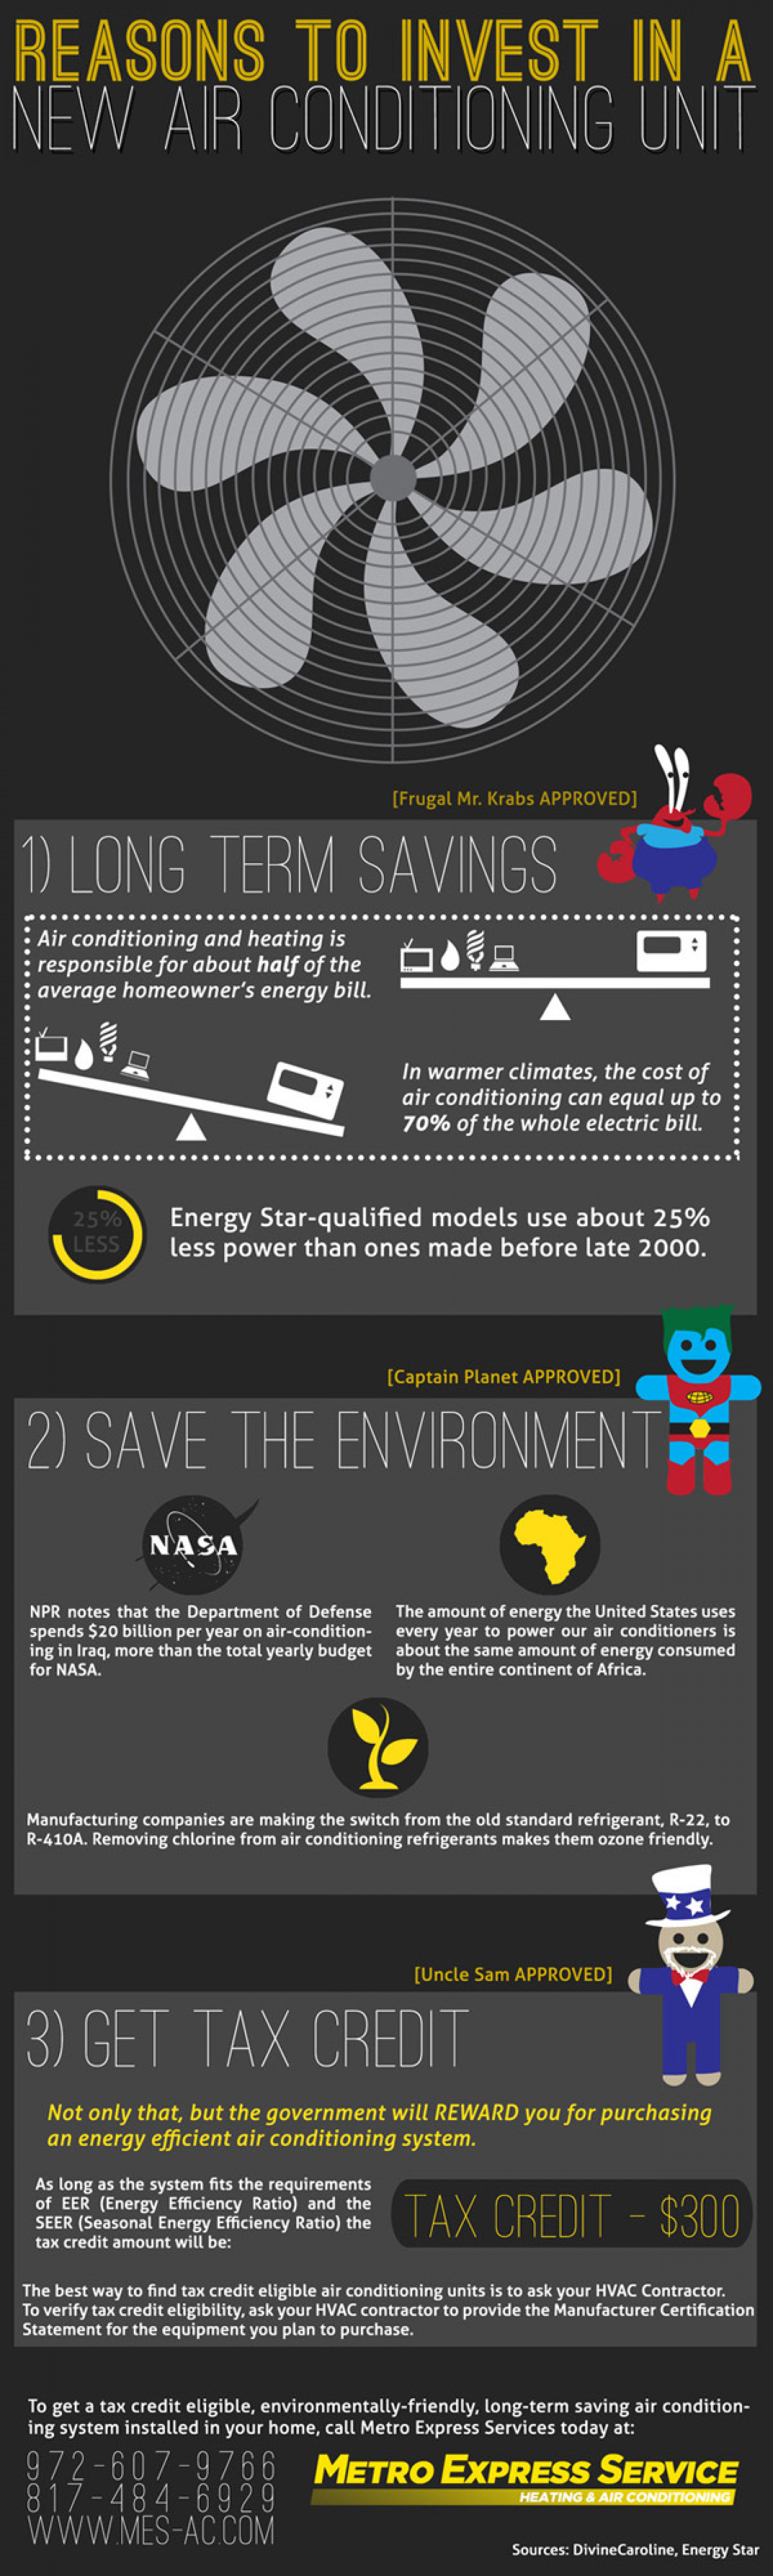 Reasons to Invest in a New Air Conditioning Unit Infographic